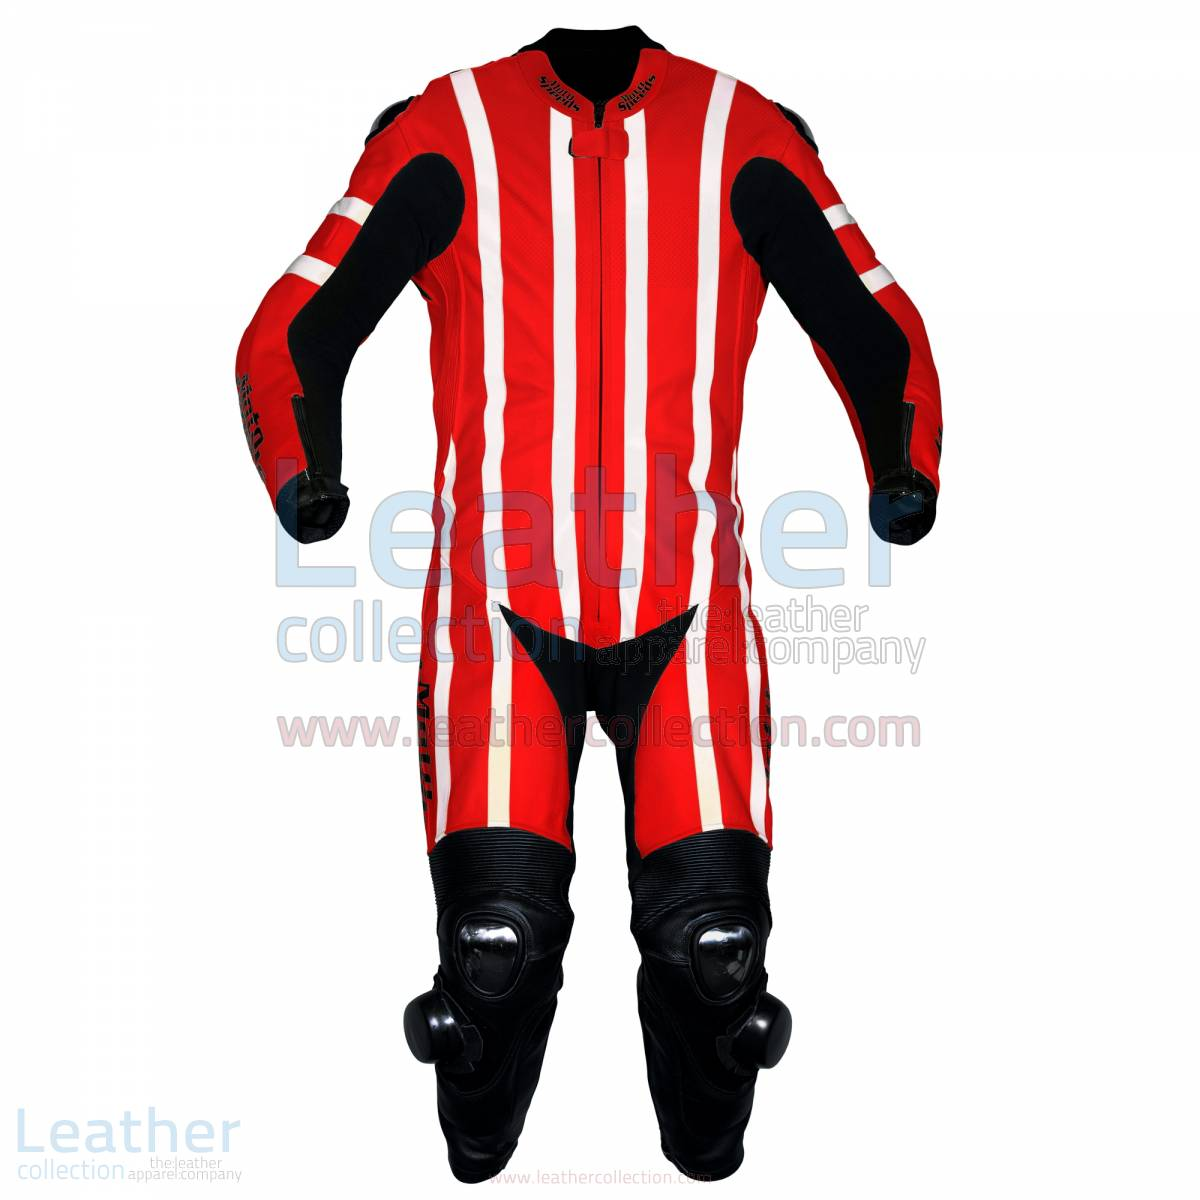 Lined Riding Suit